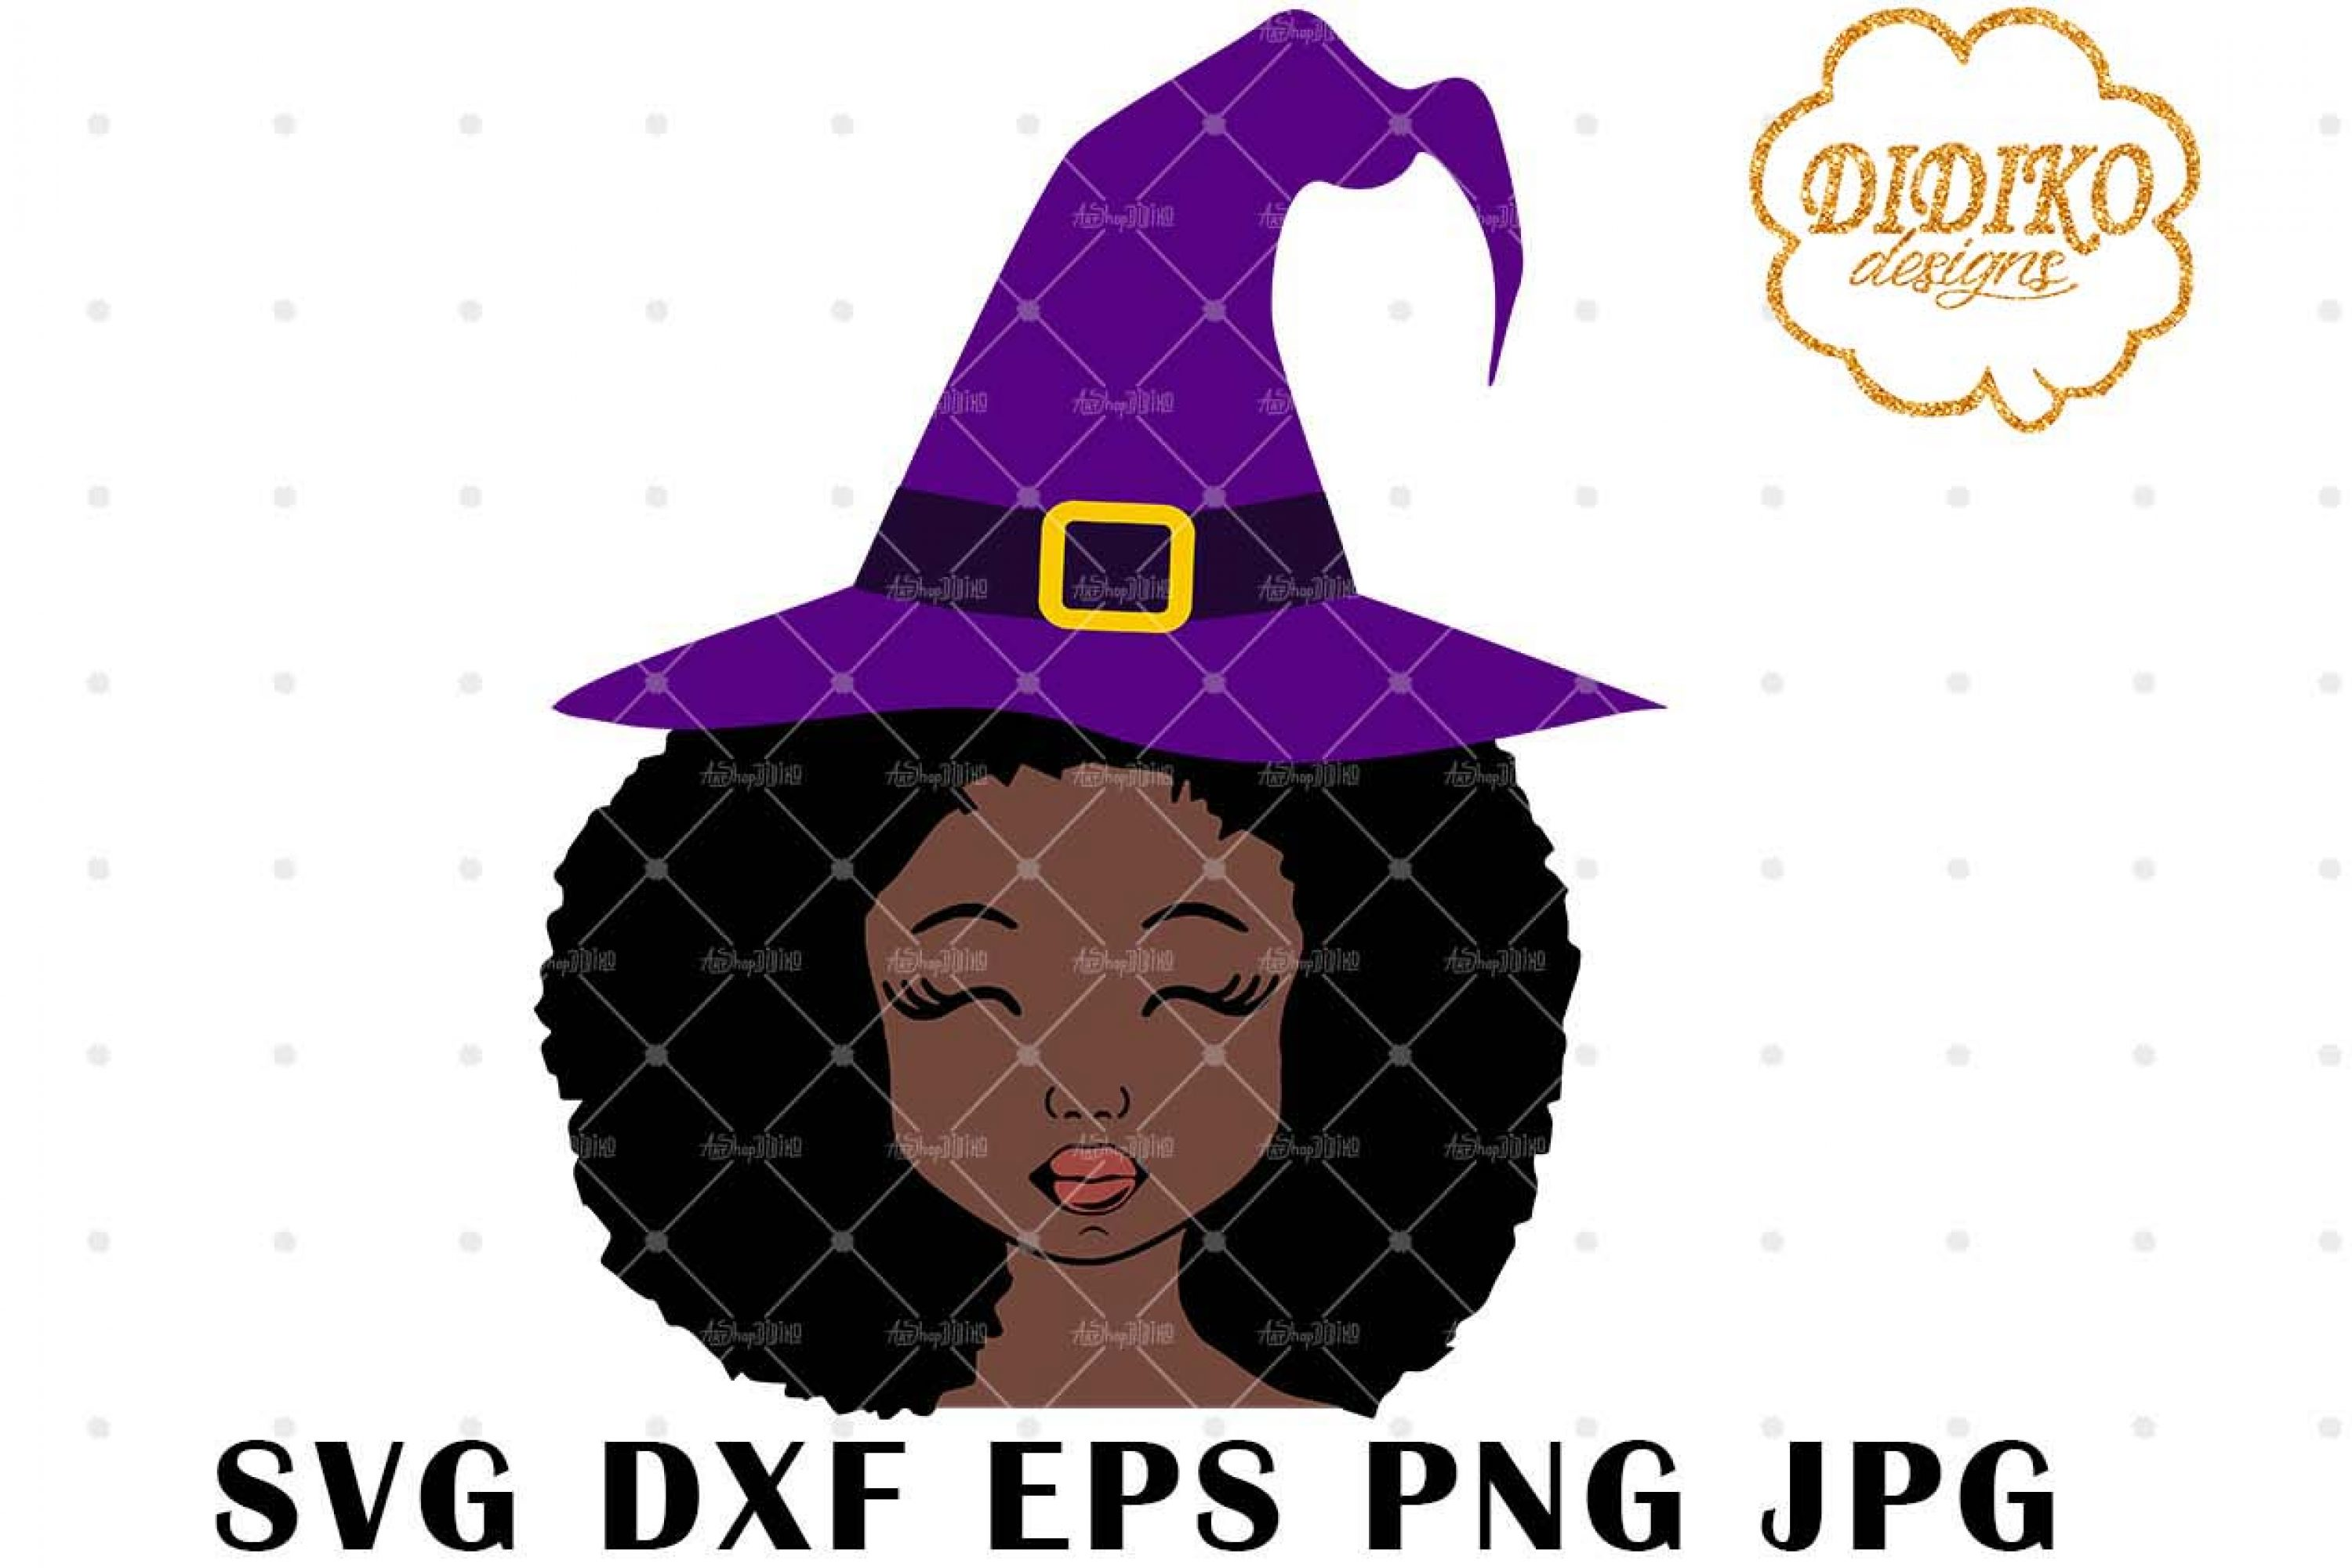 Halloween Afro Girl 3 SVG, Witch Hat SVG, Afro Puff svg